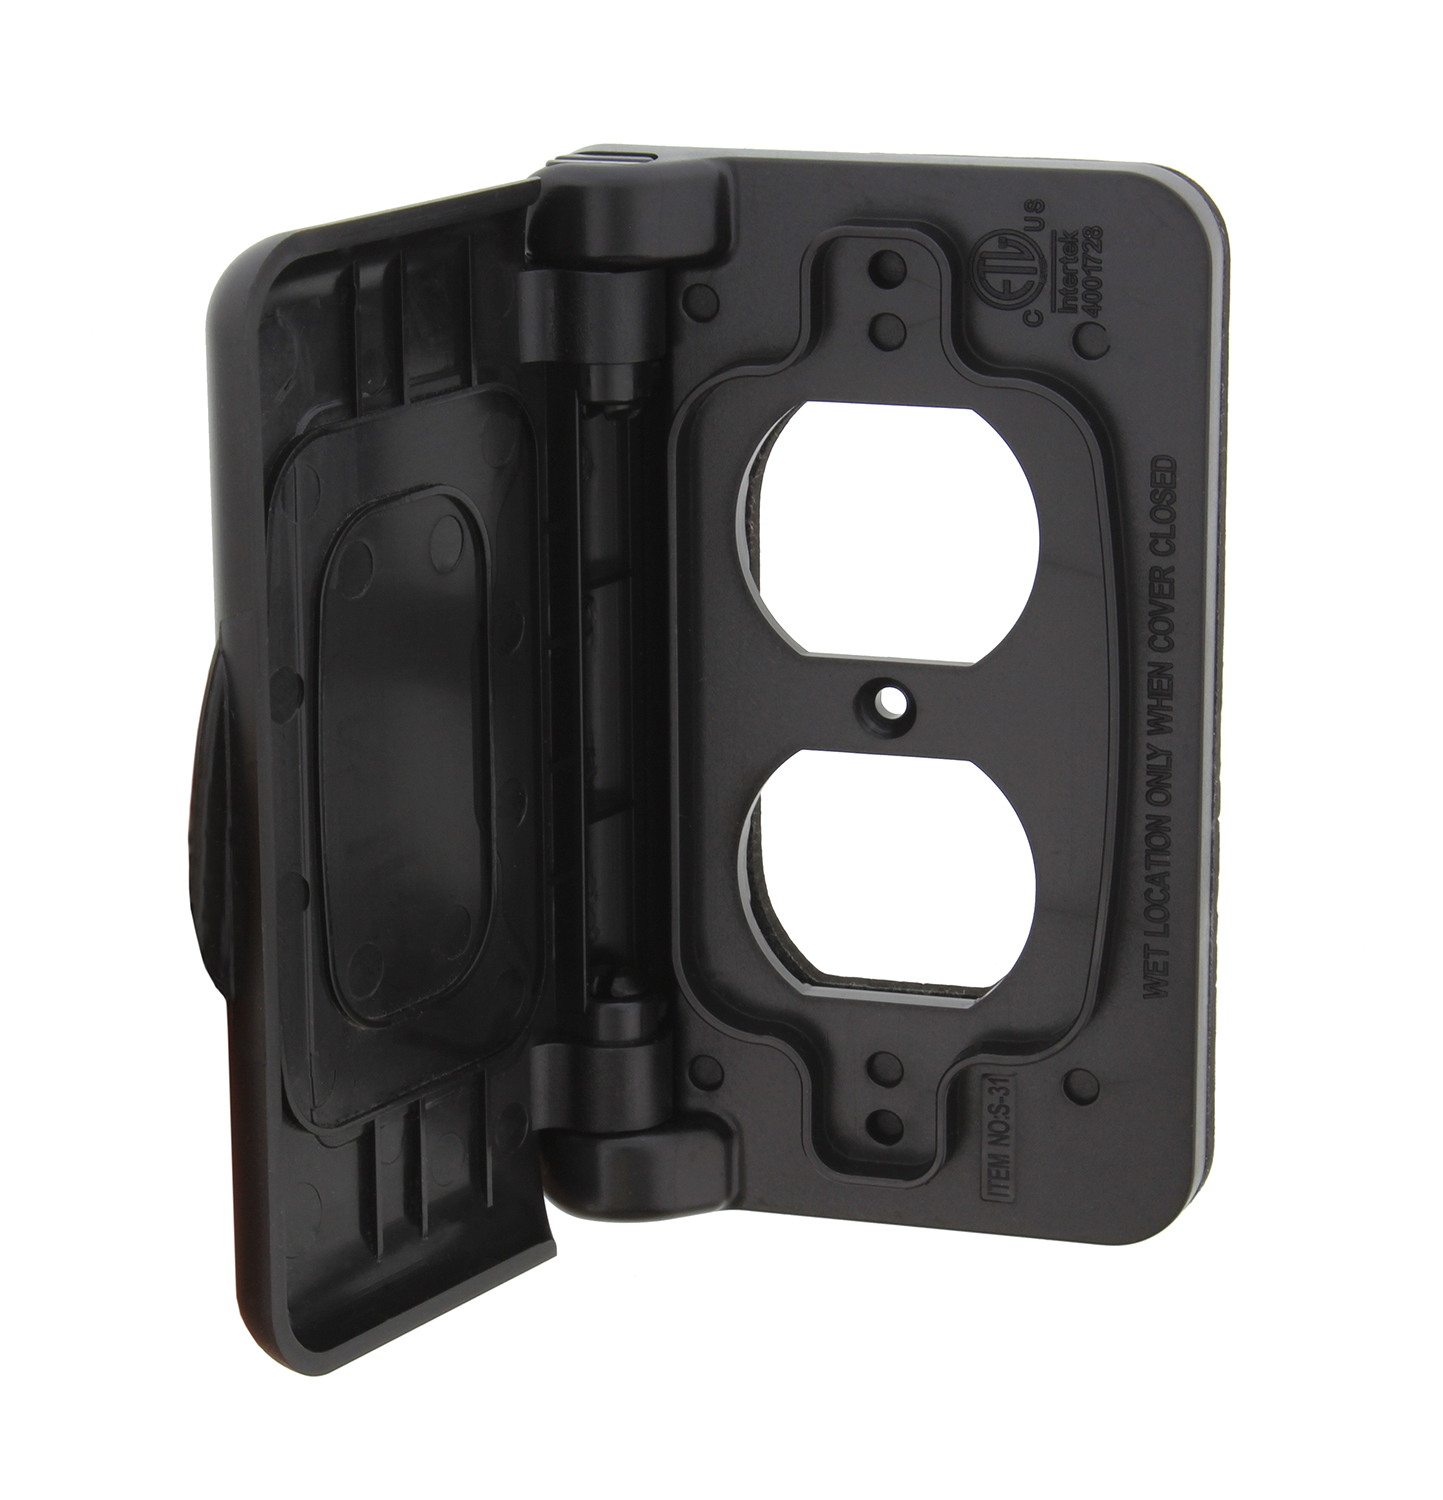 Abn Weatherproof Receptacle Cover For Rv Outdoor Electrical Outlet